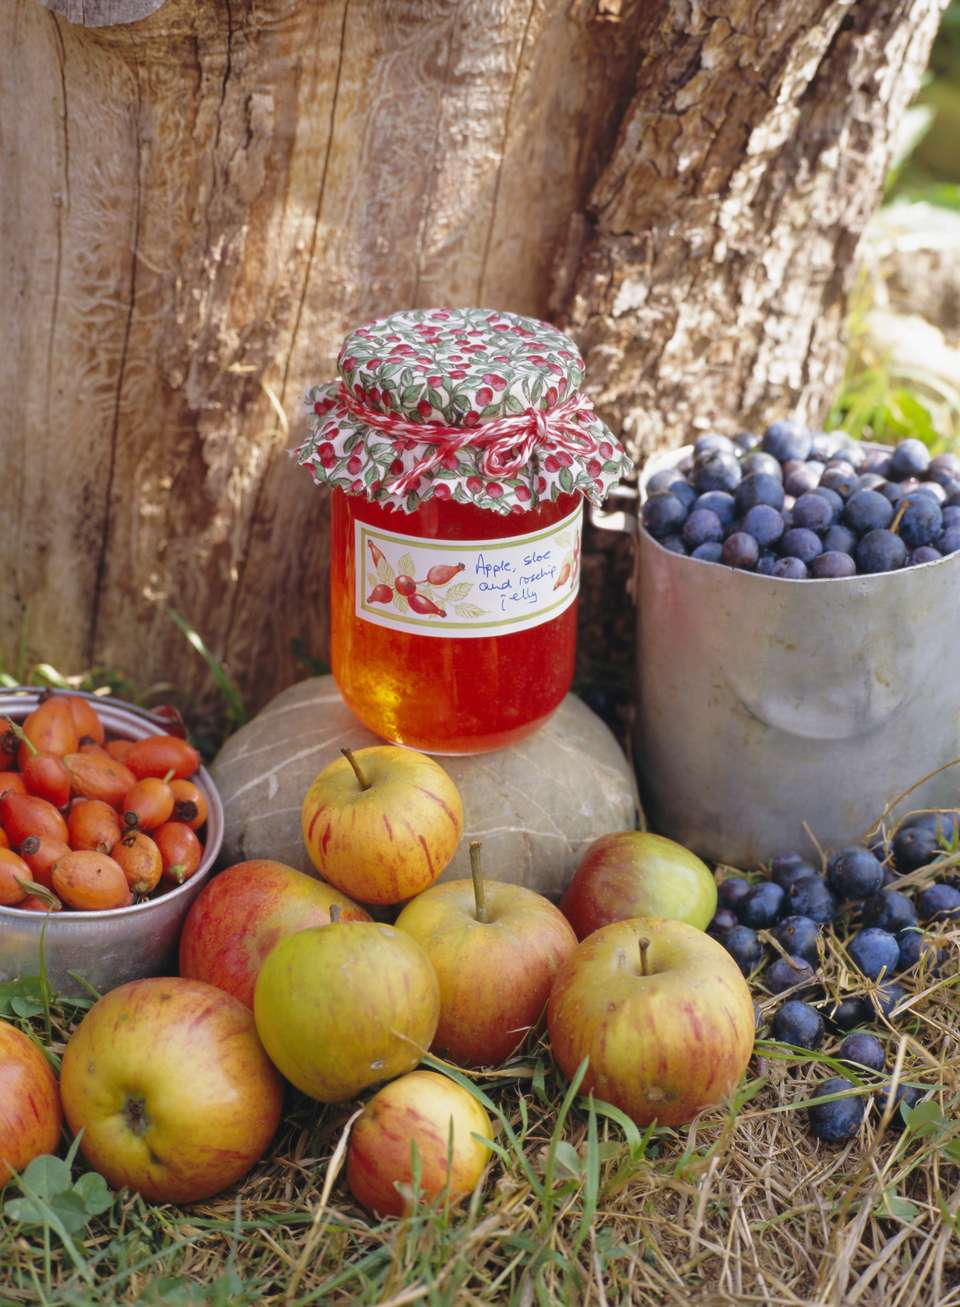 Rose hip jelly and fruit